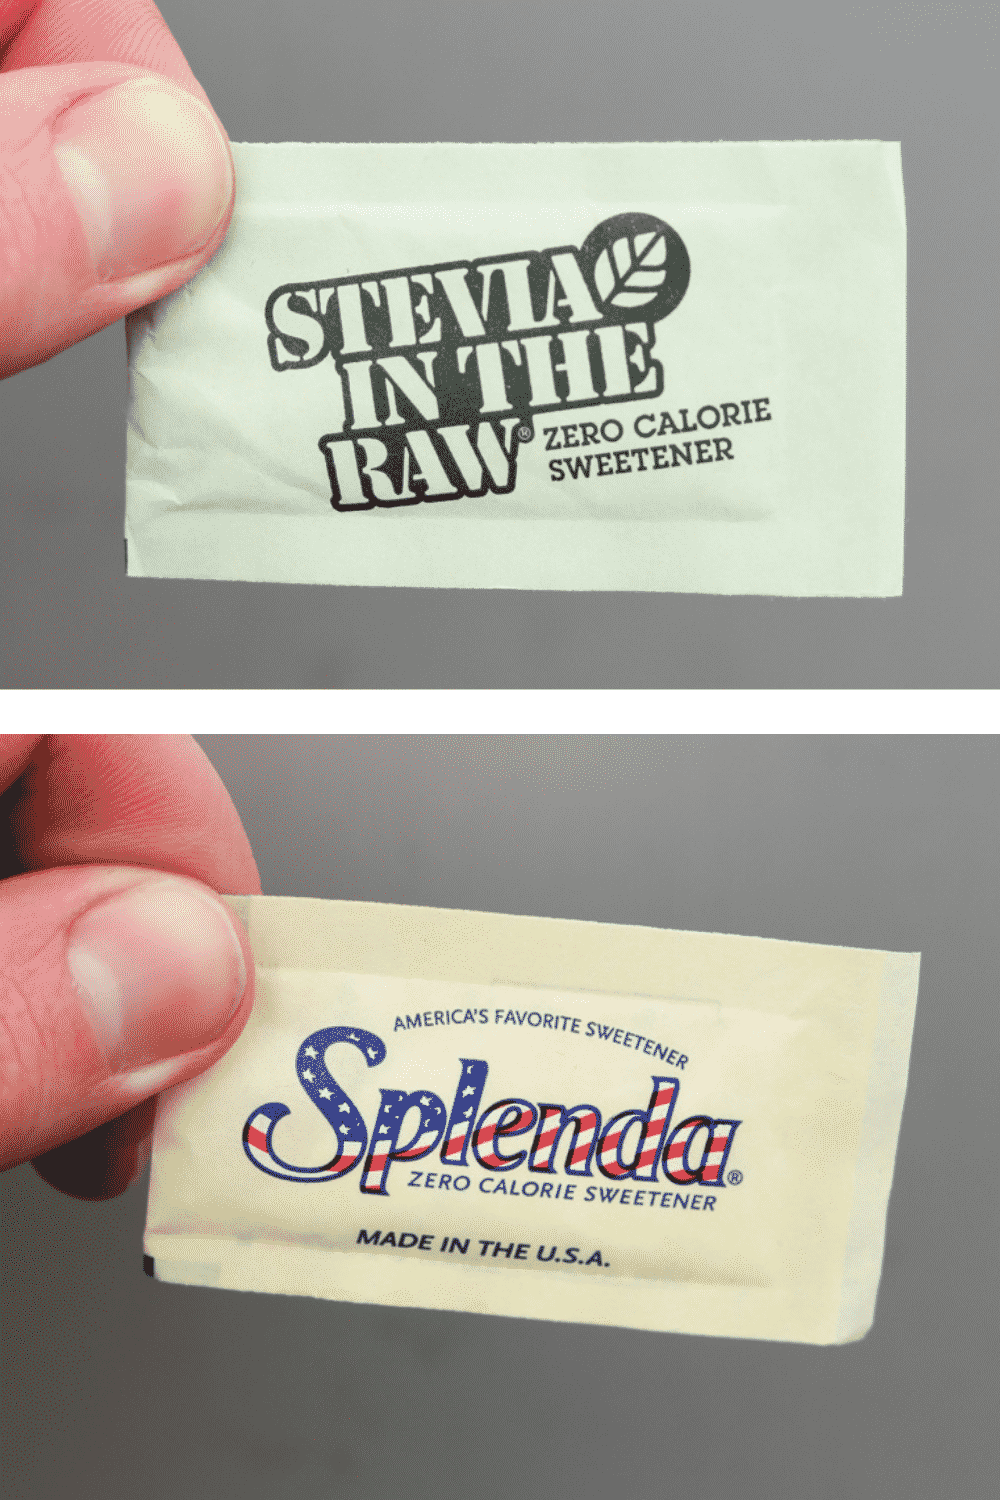 Two different pictures of a hand holding sweetener packets.